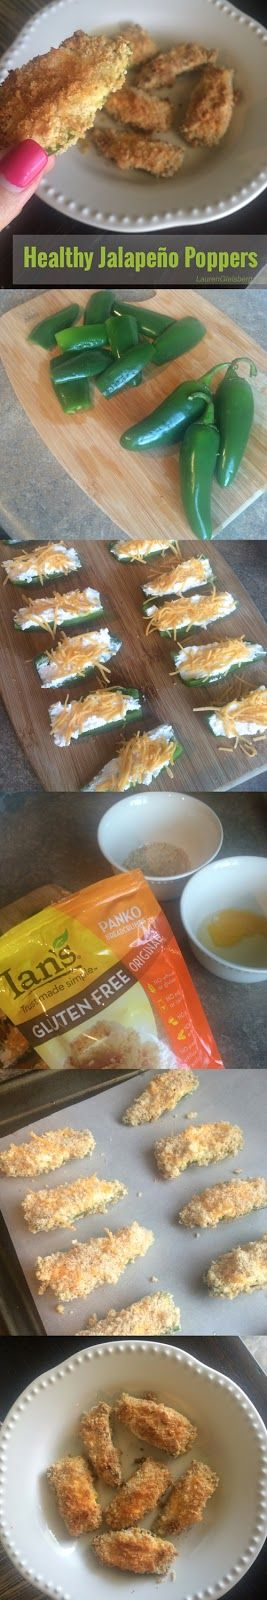 HEALTHY JALAPENO POPPER RECIPE by LaurenGleisberg.com